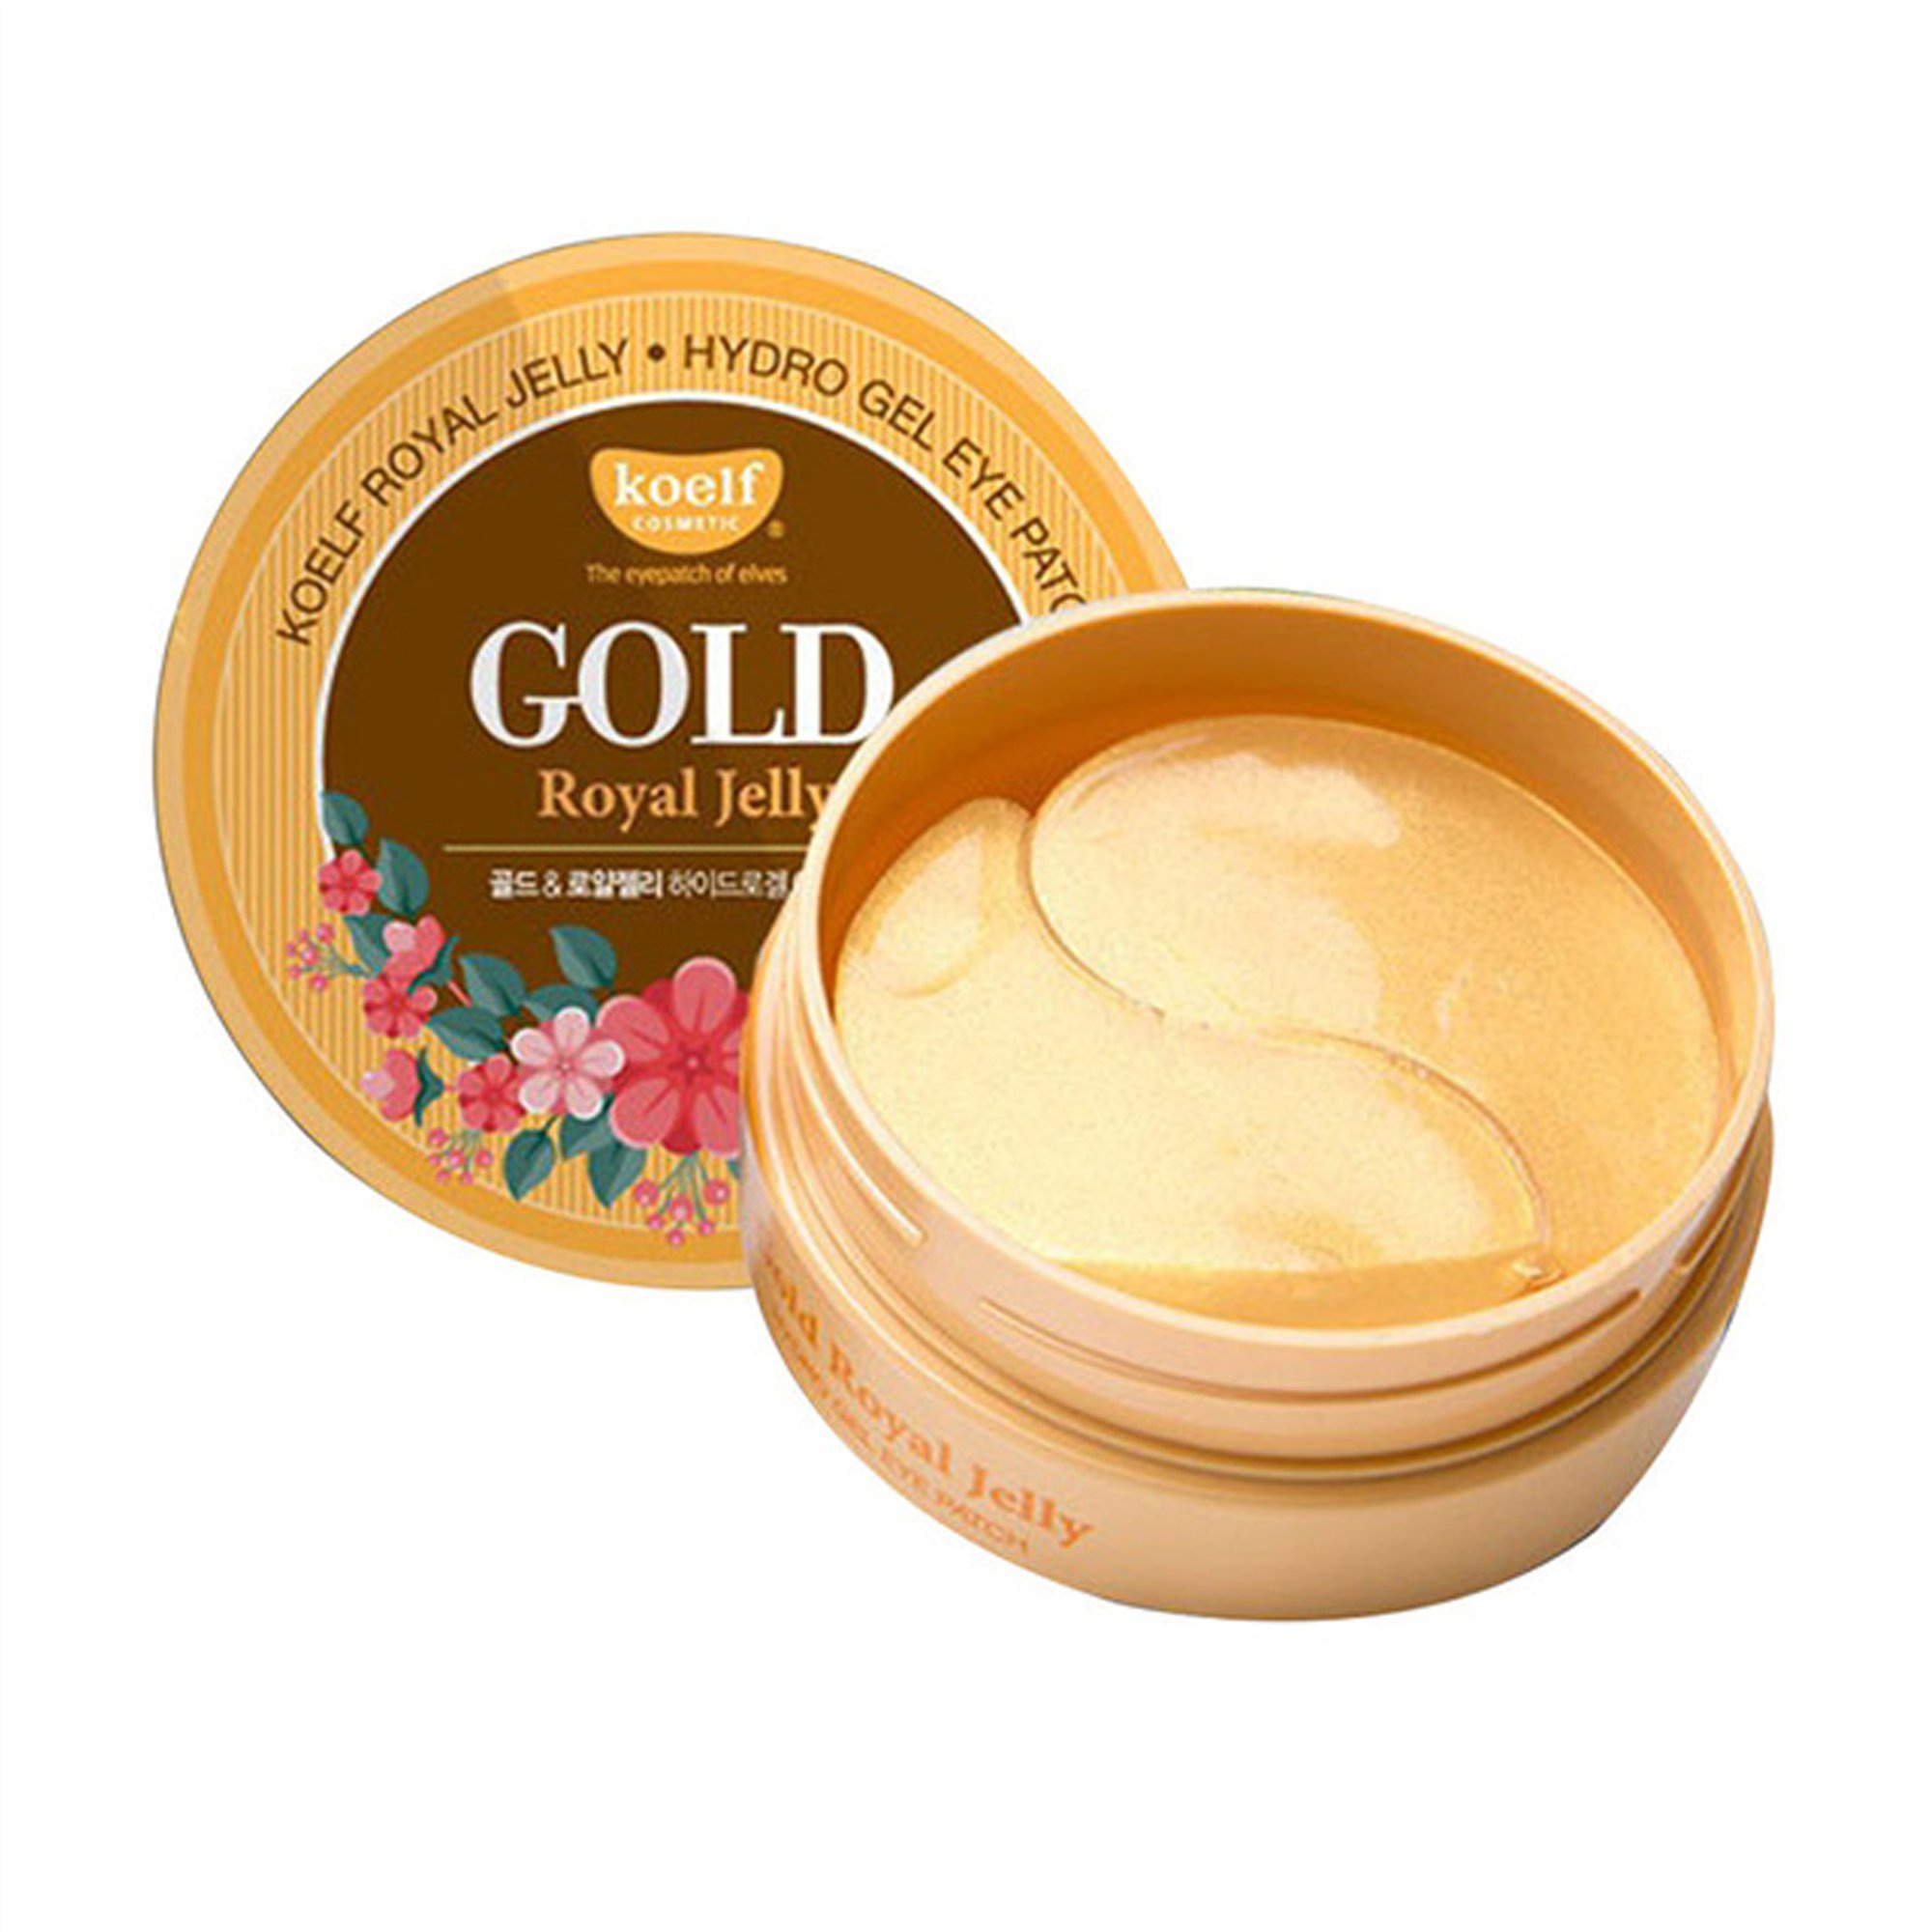 Koelf Gold Royal Jelly Hydrogel Eye Patch